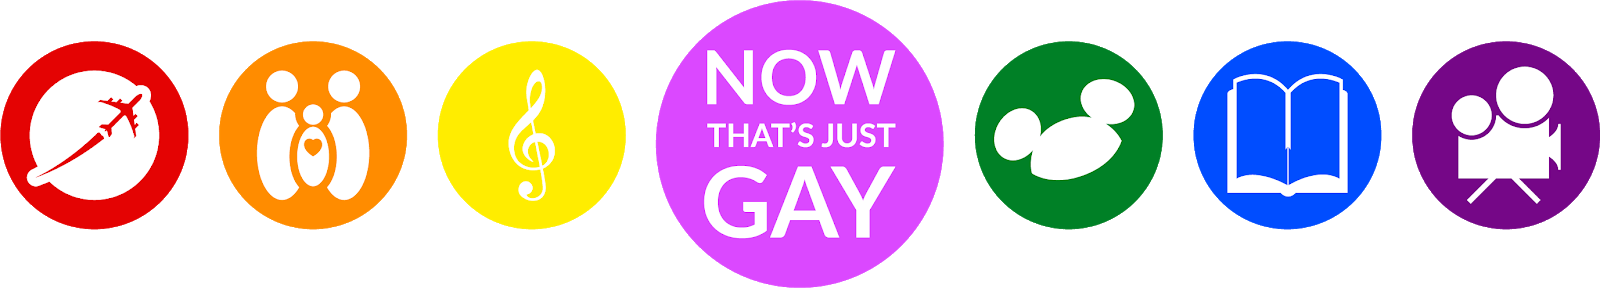 Now That's Just Gay